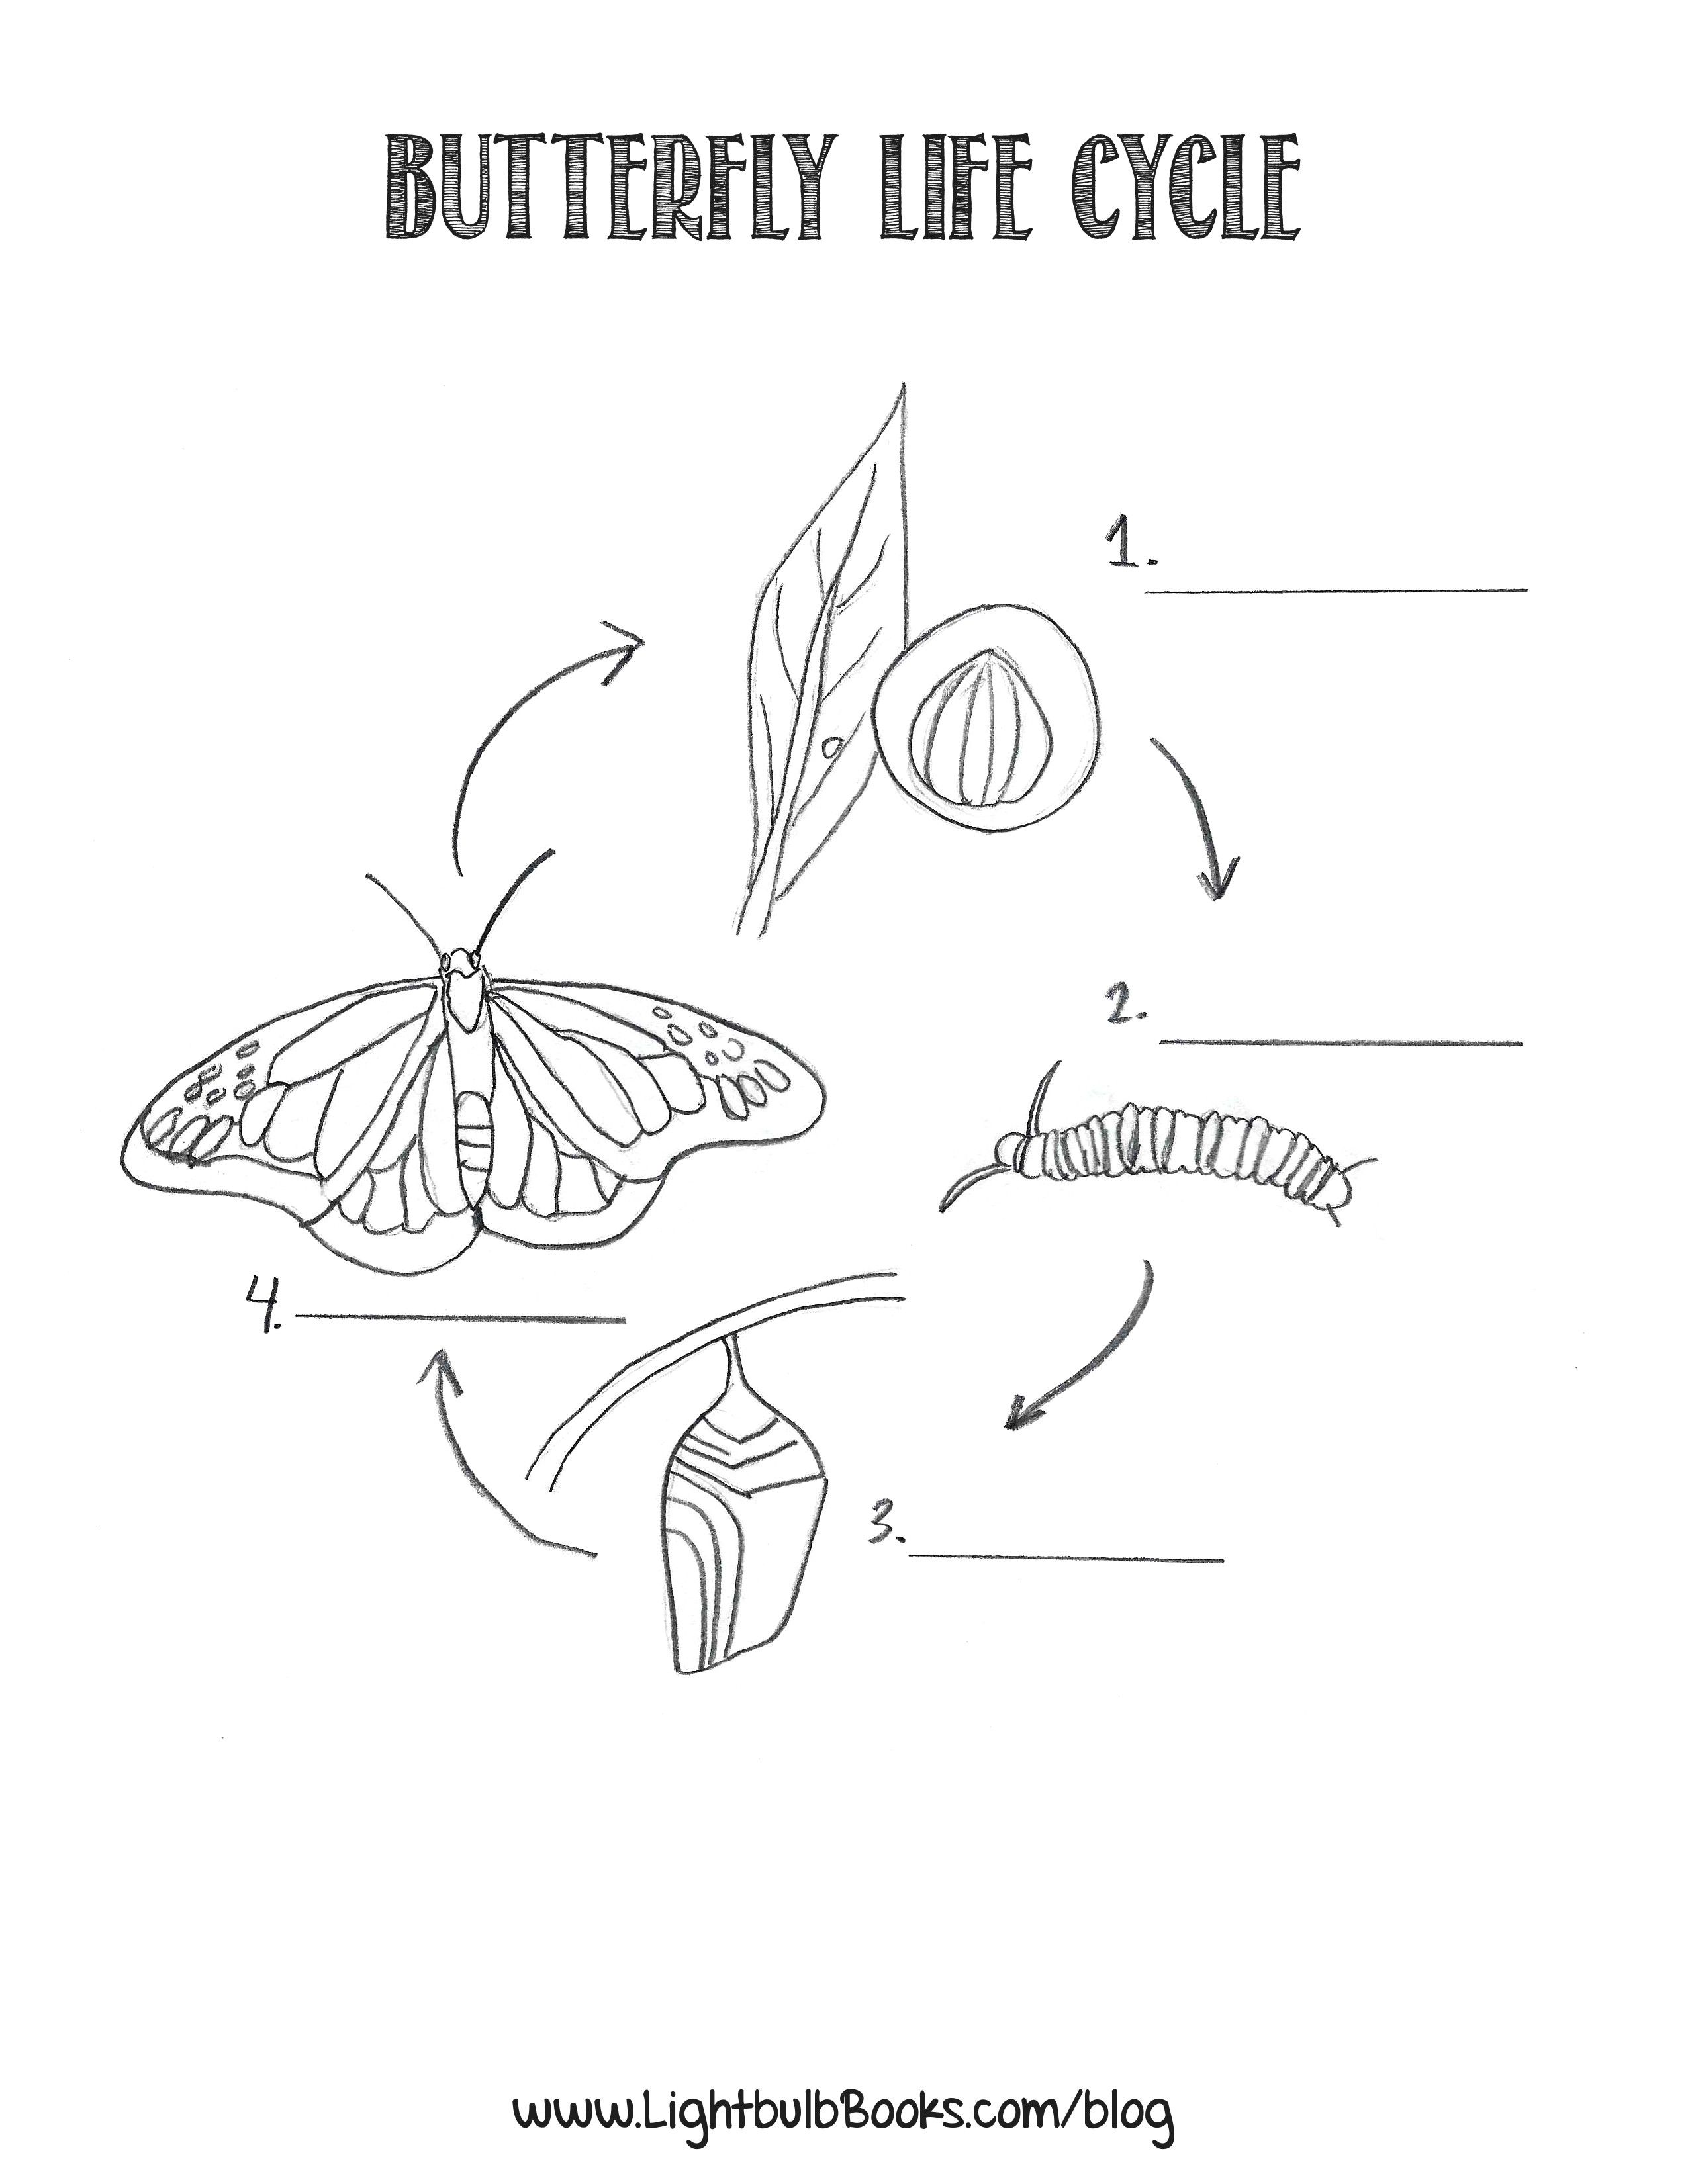 Butterfly stages coloring pages - 10 Pics Of Sunflower Life Cycle Coloring Page Coloring Pages